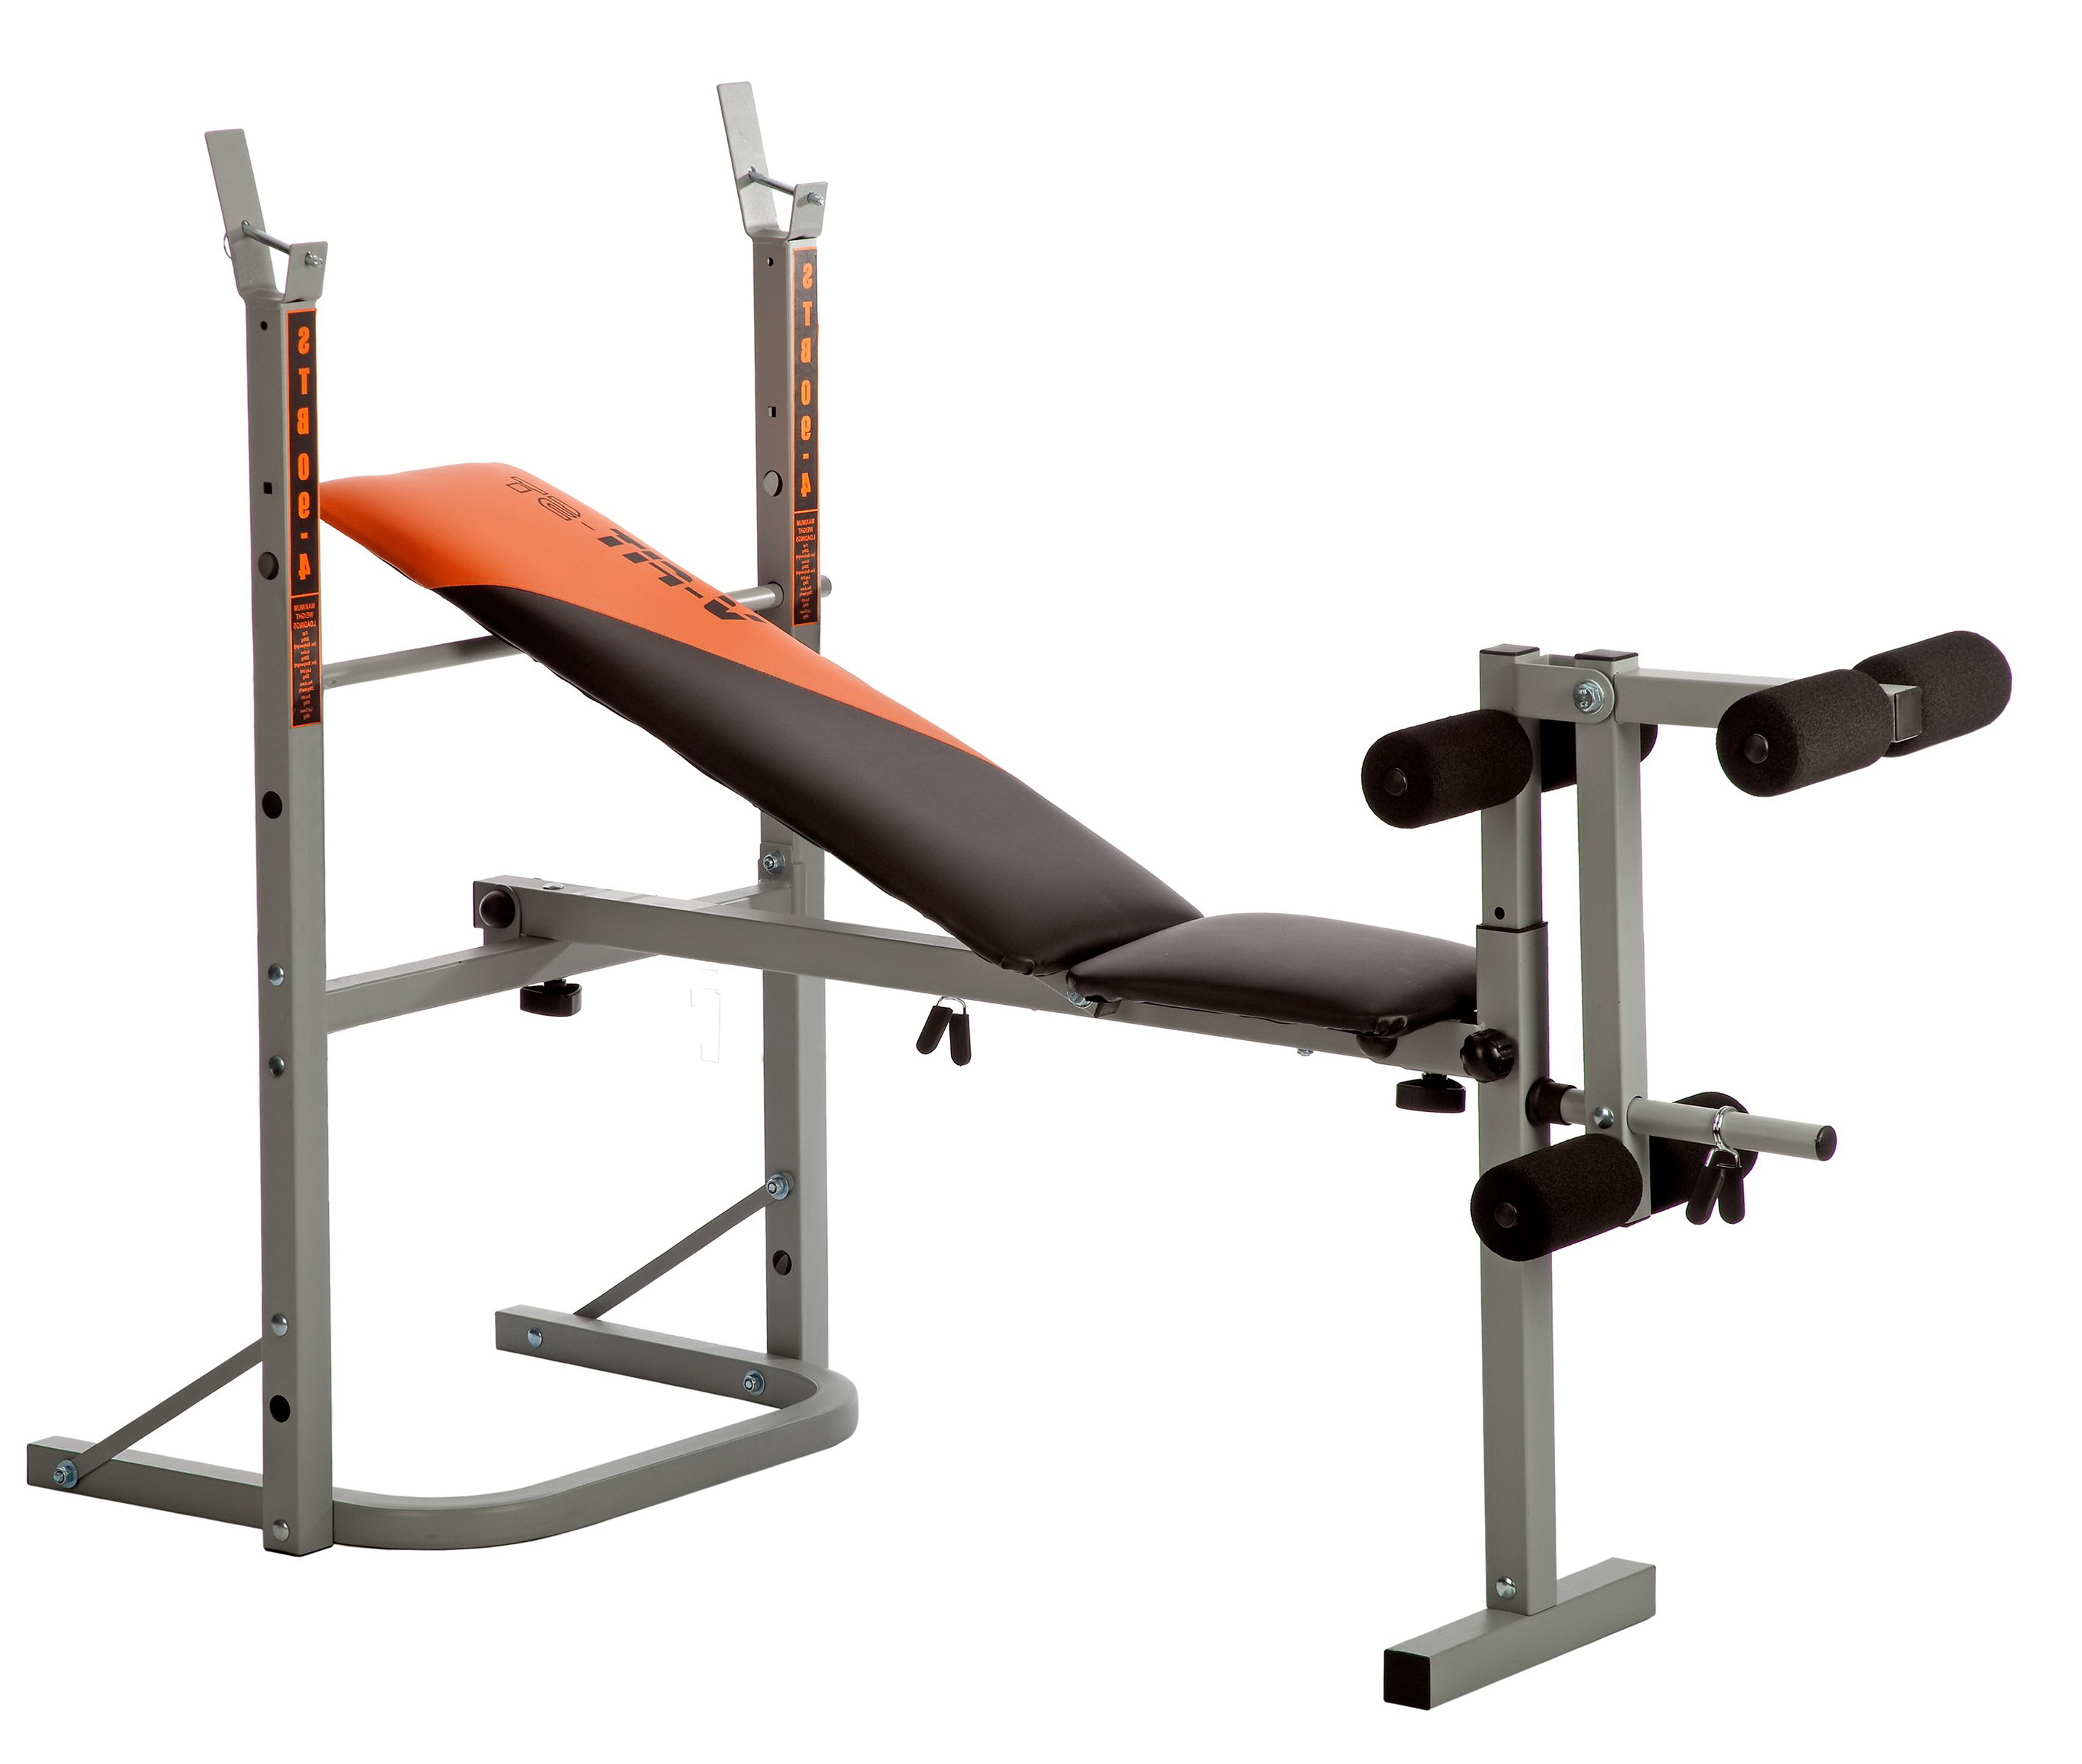 V Fit Stb 09 2 Folding Weight Bench Home Design Ideas